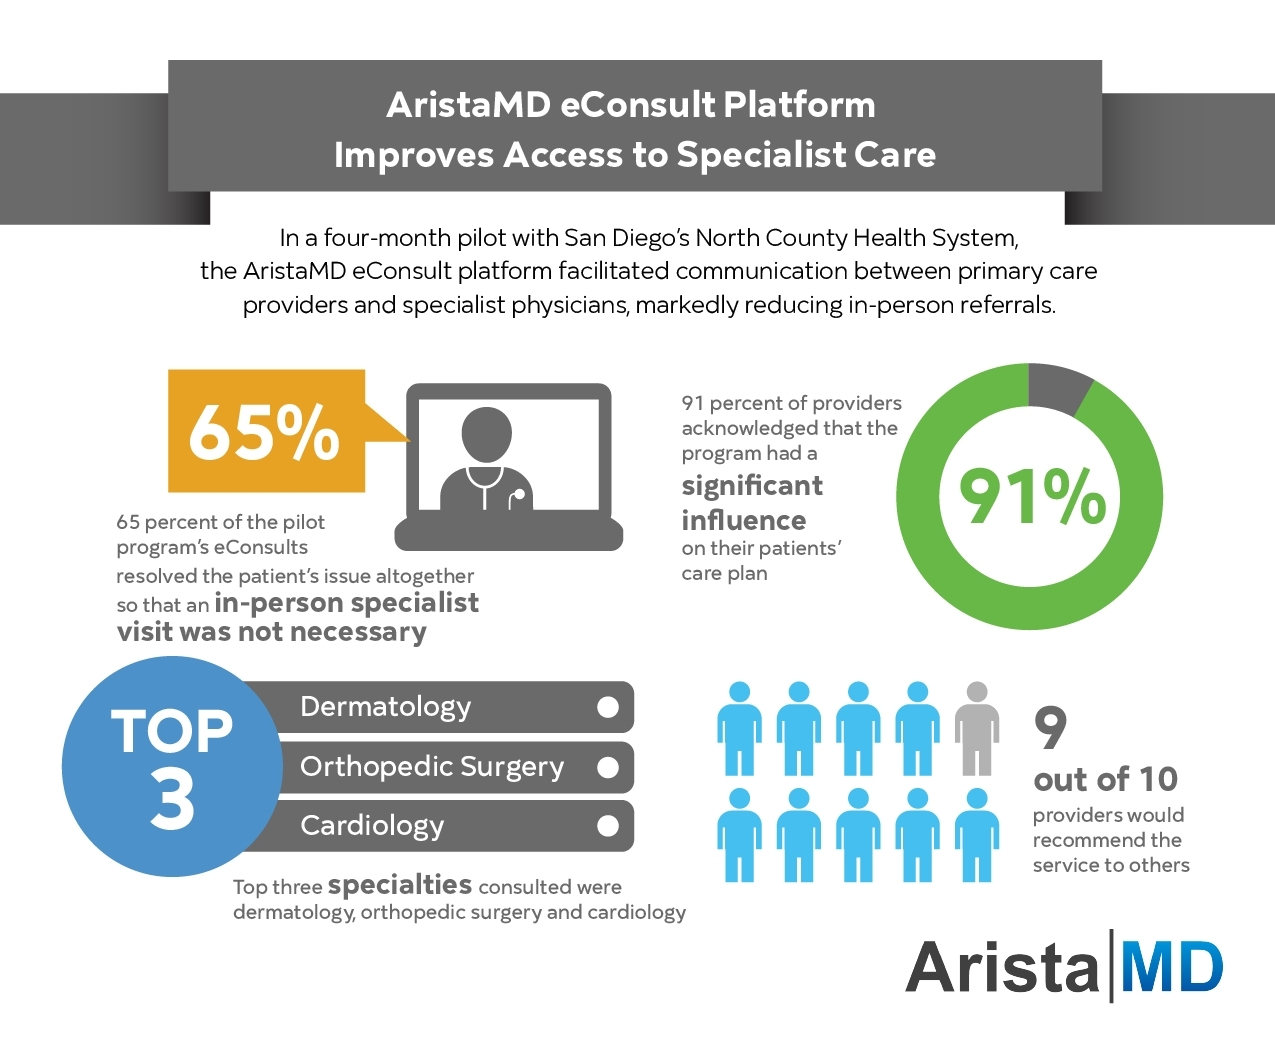 In a four-month pilot with San Diego's North County Health System, the AristaMD eConsult platform facilitated communication between primary care providers and specialist physicians, markedly reducing in-person referrals. (Graphic: Business Wire)